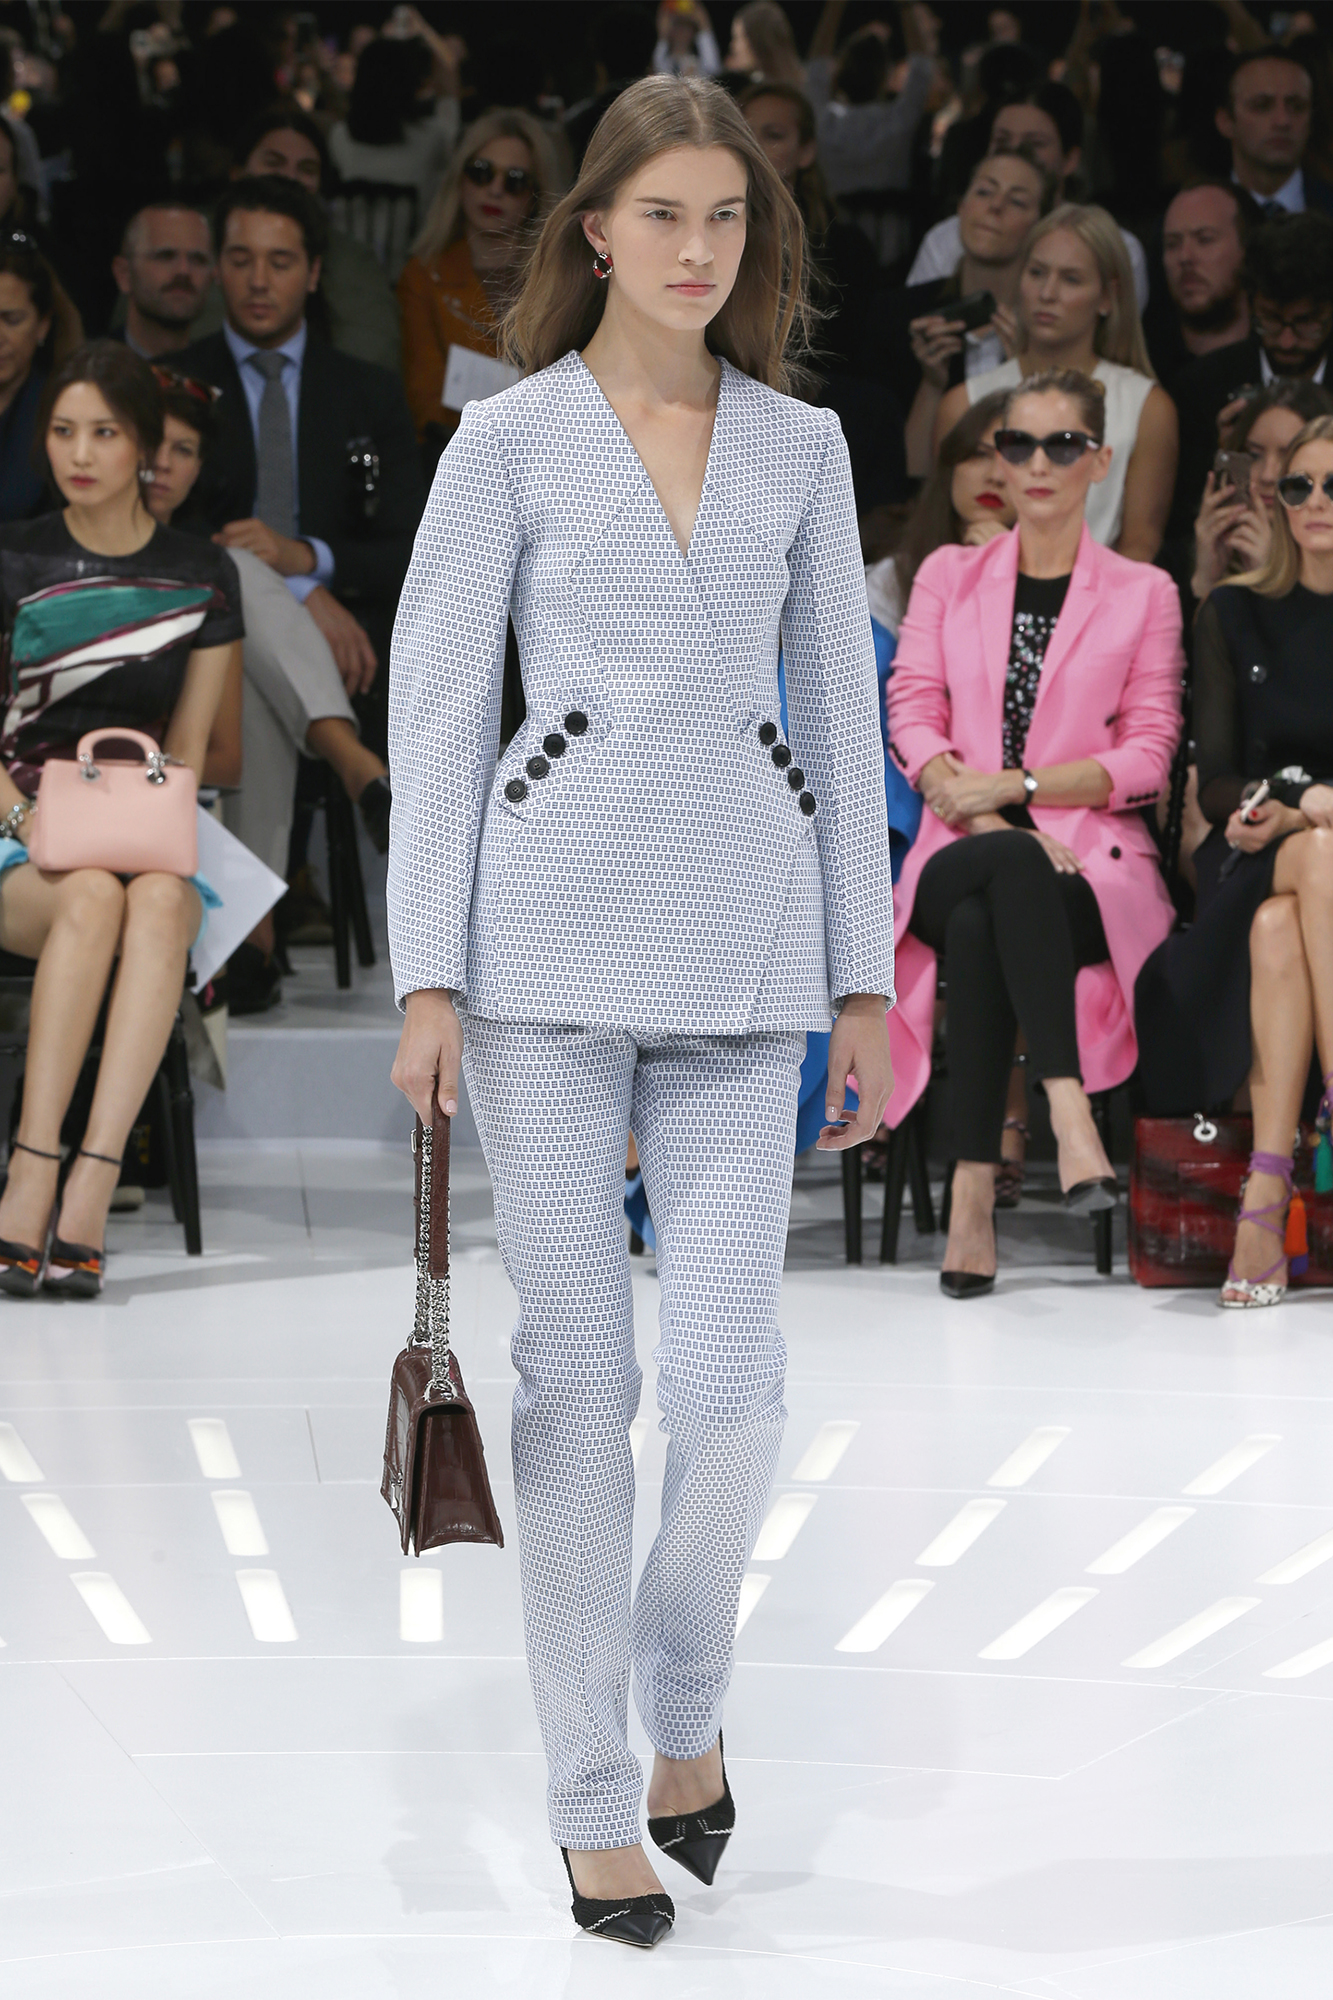 Christian Dior Haute Couture Spring-Summer Ready To Wear Dresses & Accessories Collection 2015-16 (26)